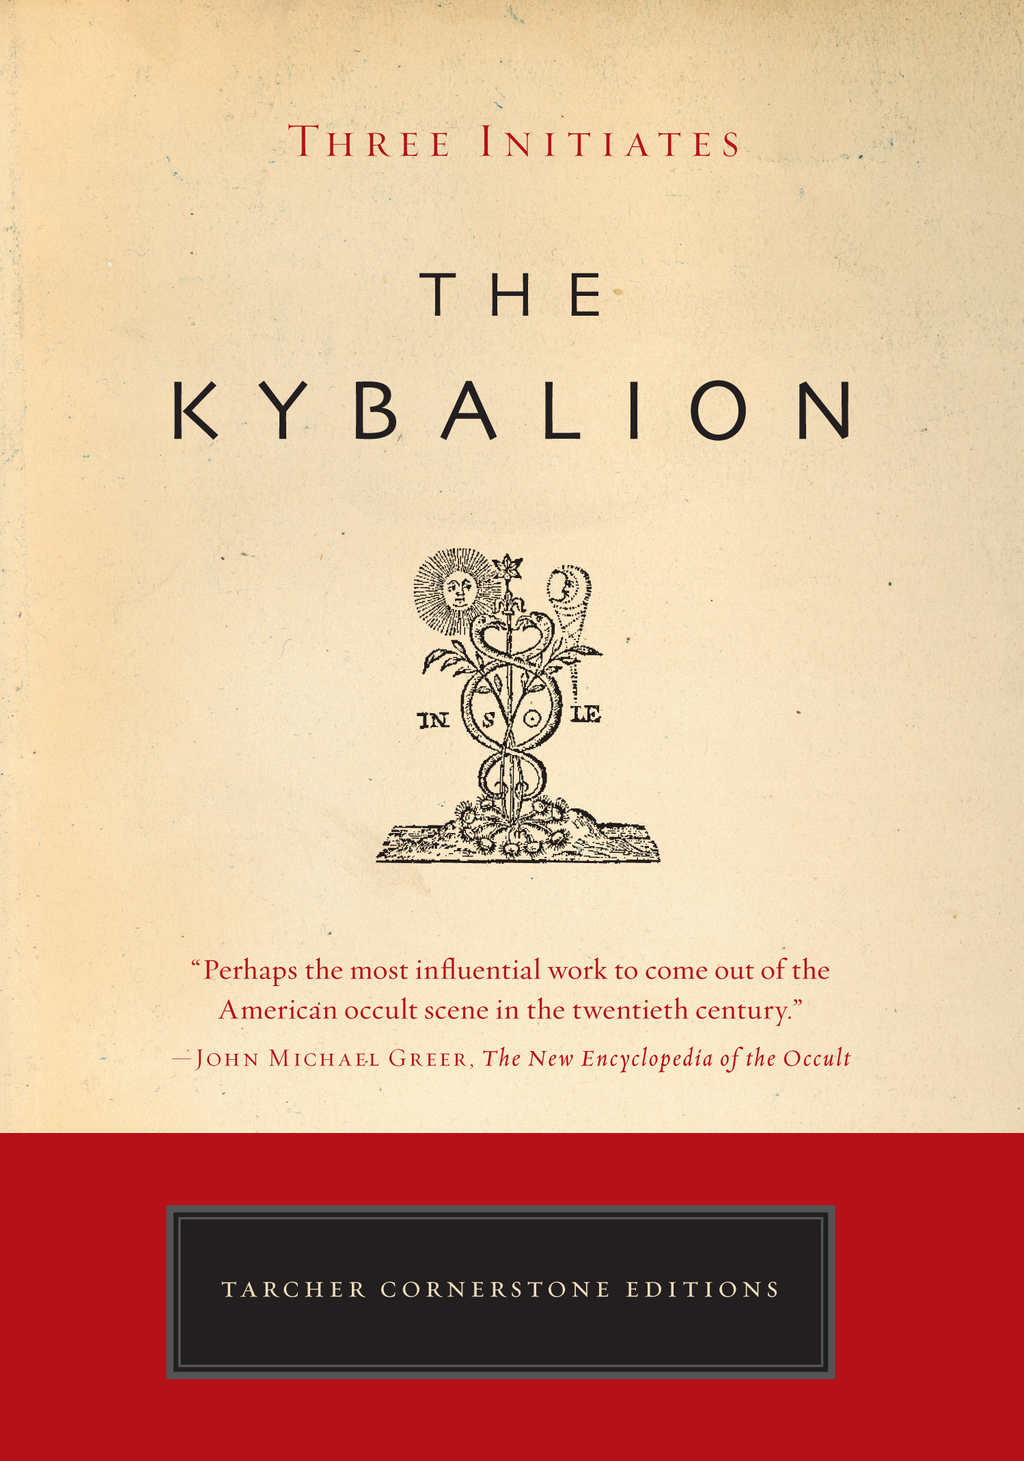 The Kybalion: The Definitive Edition By: Three Initiates,William Walker Atkinson